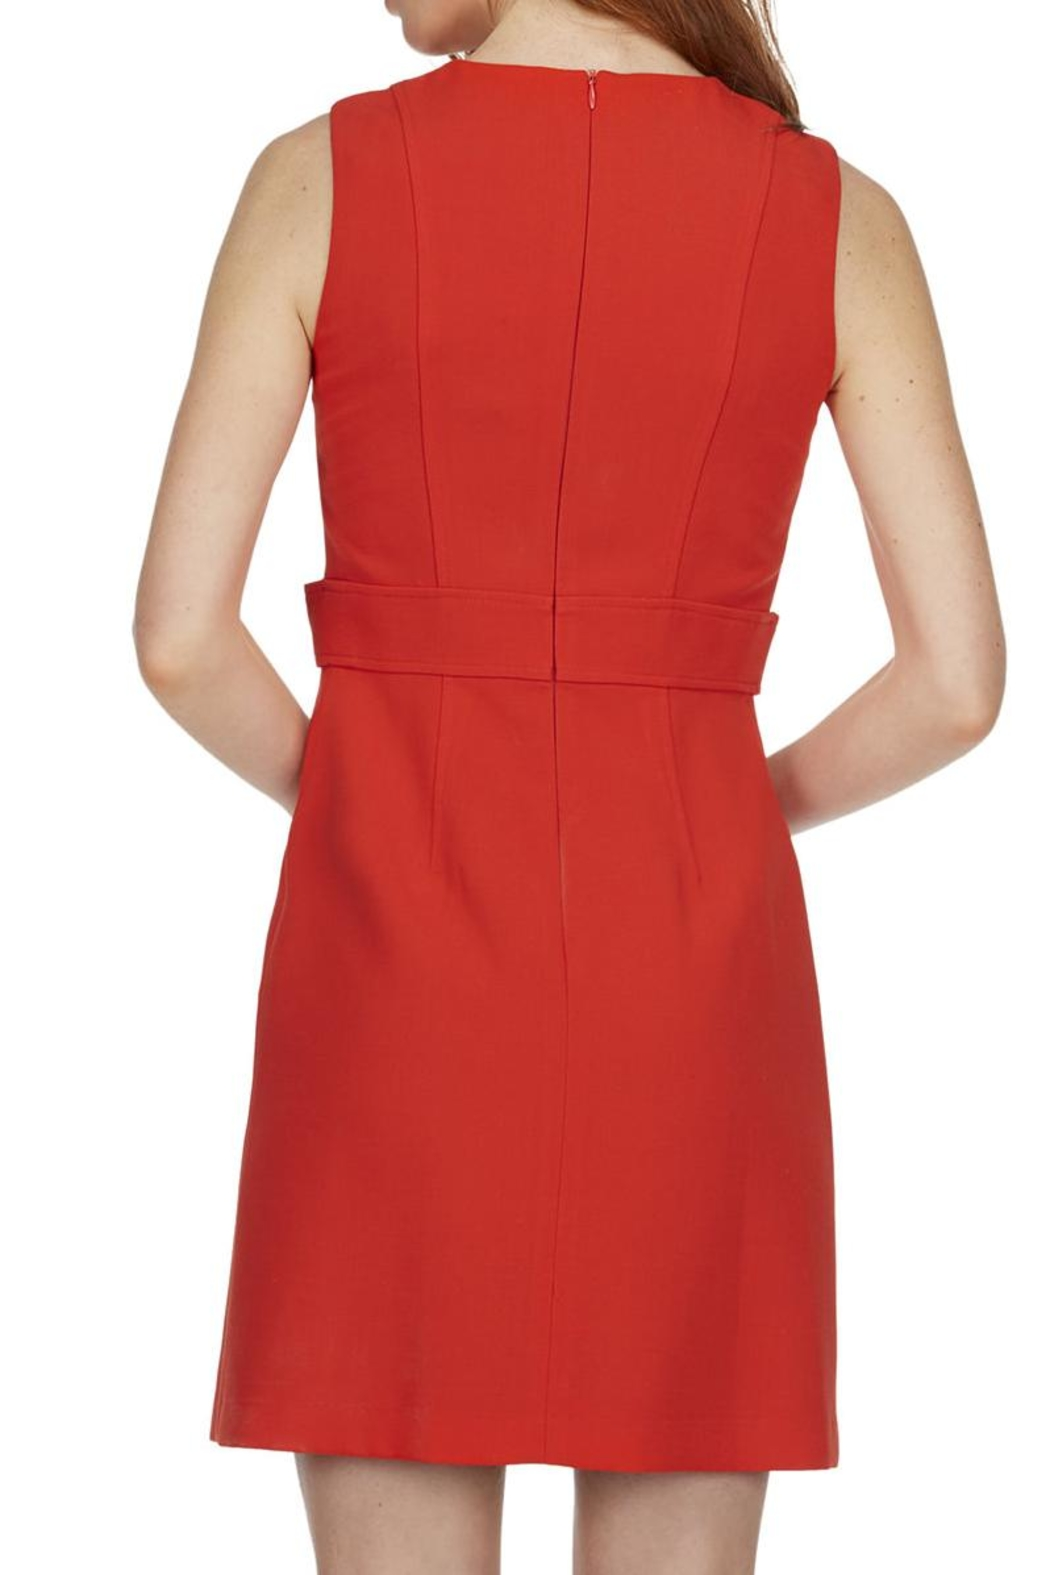 TRISTAN Red Sleeveless Dress - Back Cropped Image